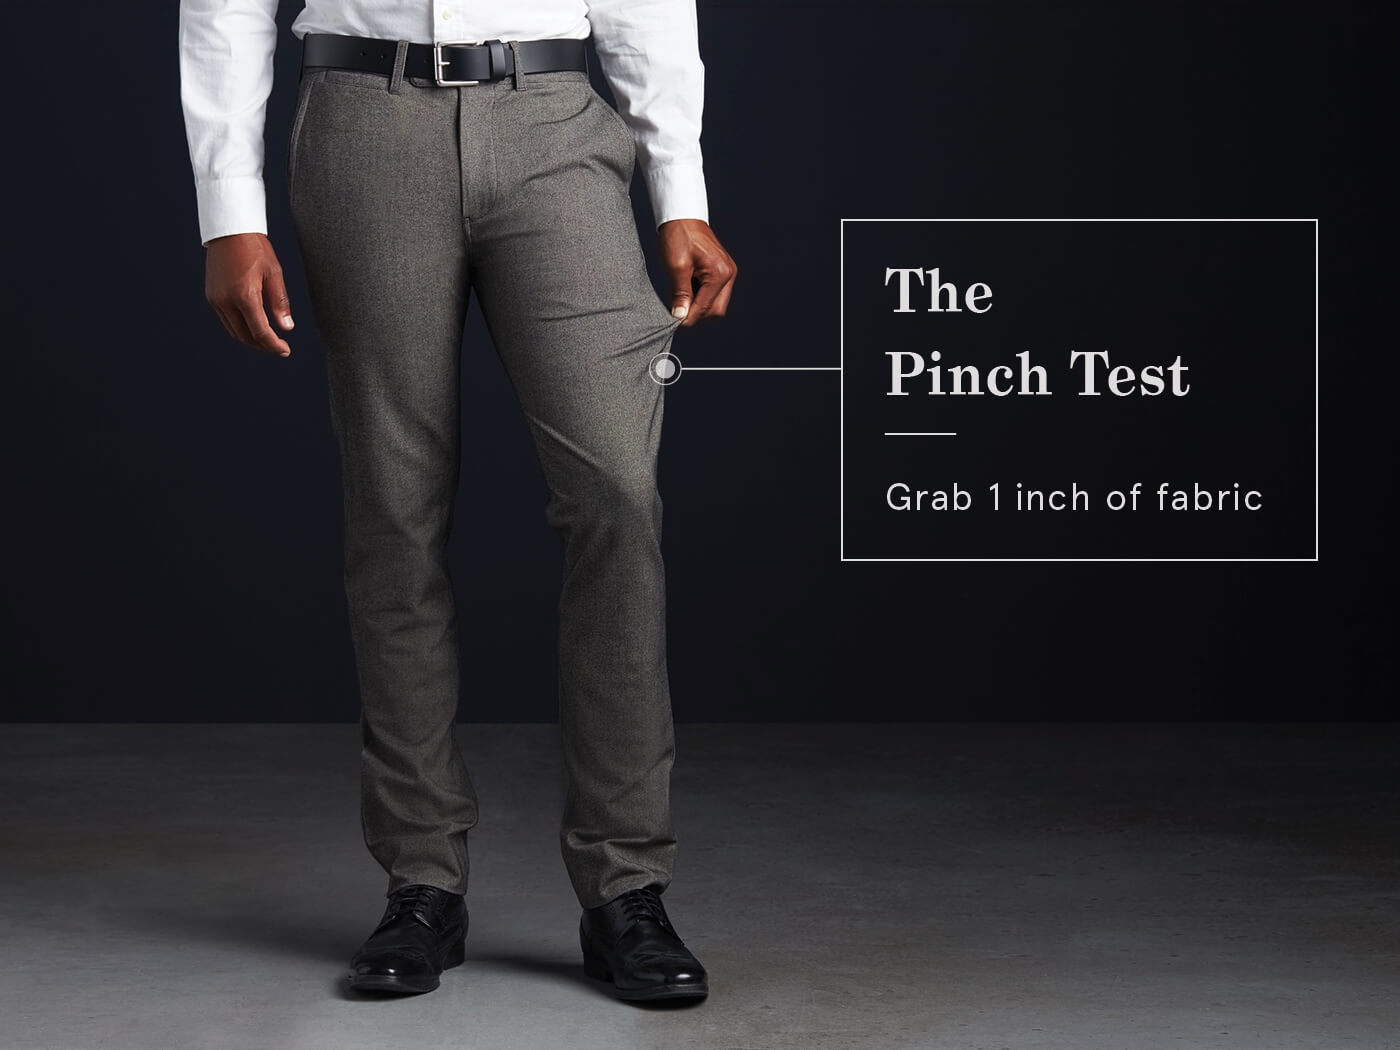 b4ed544c8 how to know if dress pants fit - do the pinch test, you should grab